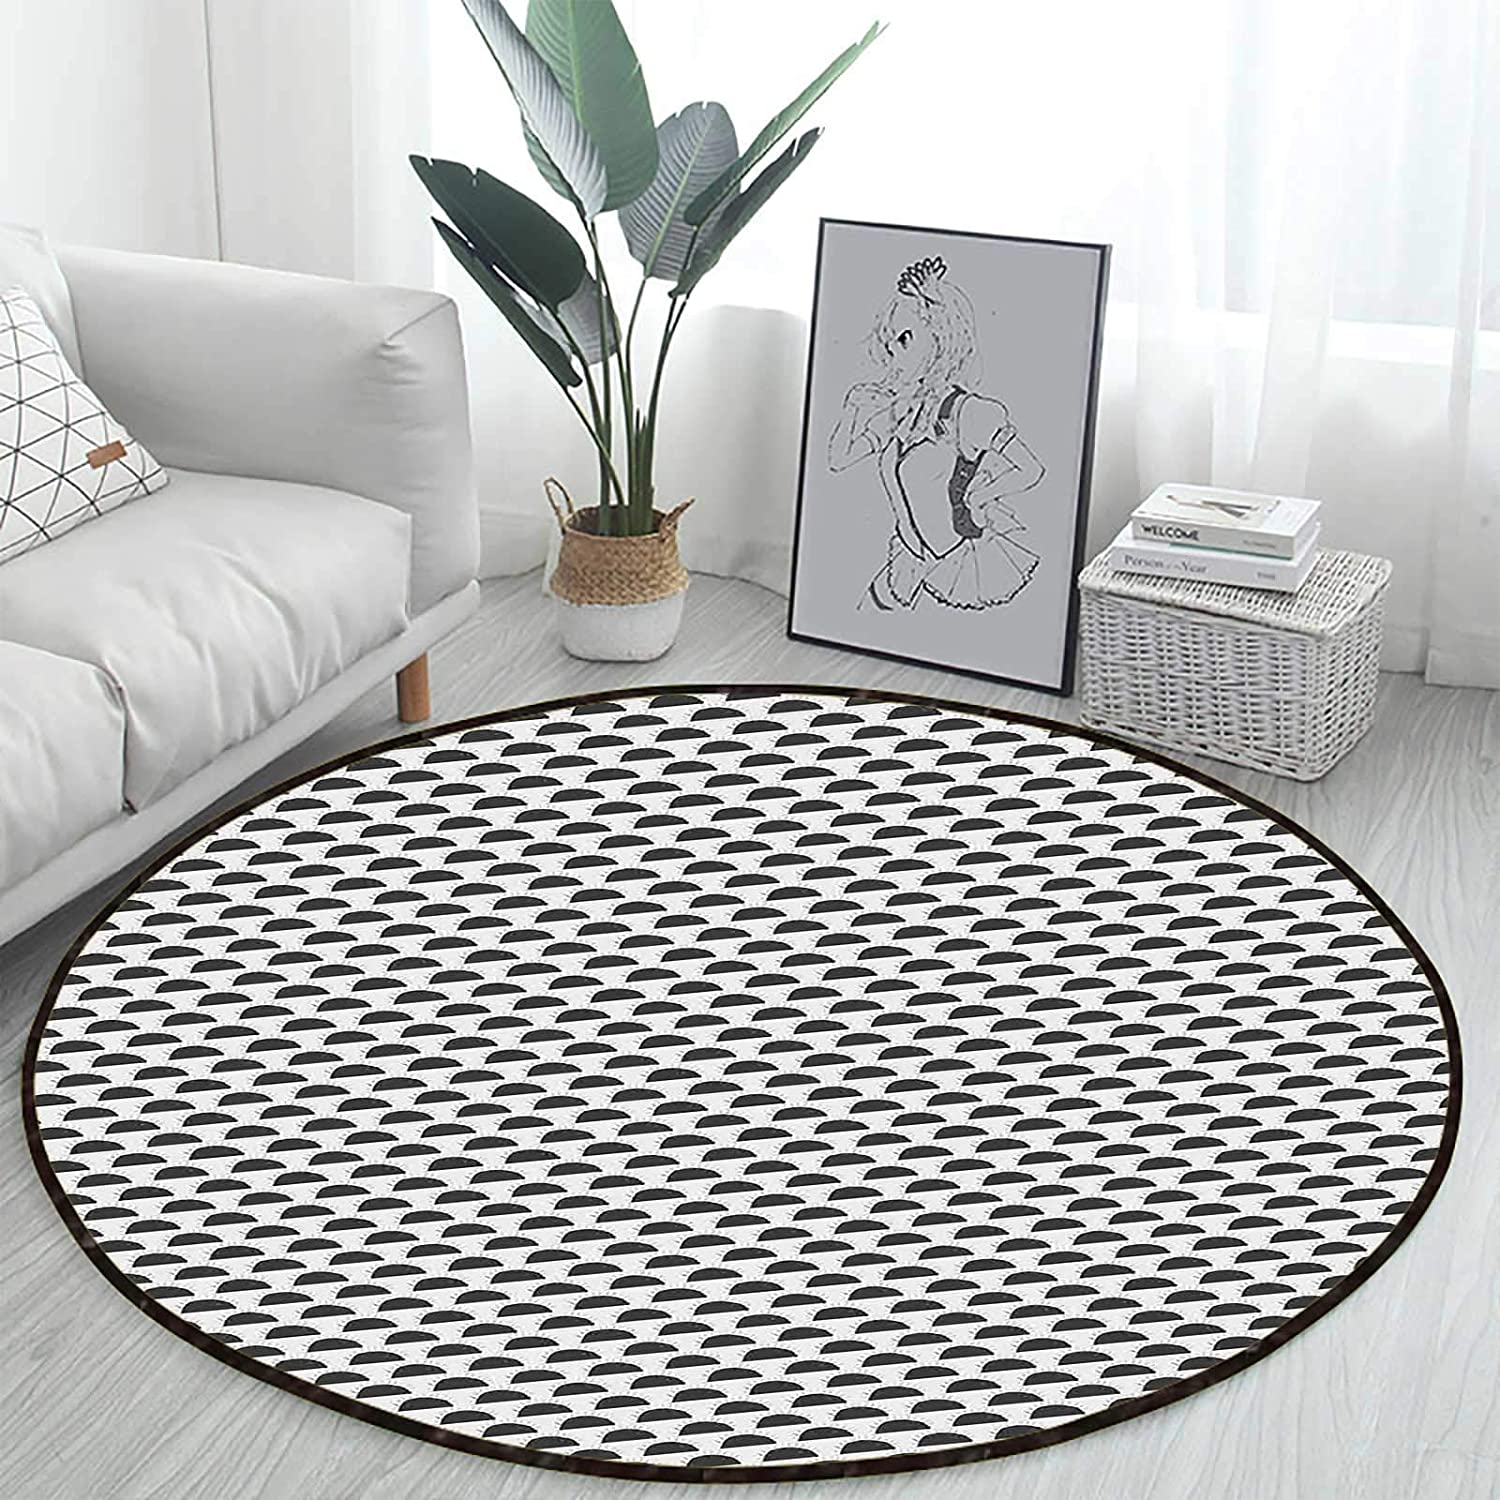 Graphic Animals Office Swivel Max 88% OFF Chair Max 63% OFF Mats for Mat Ha